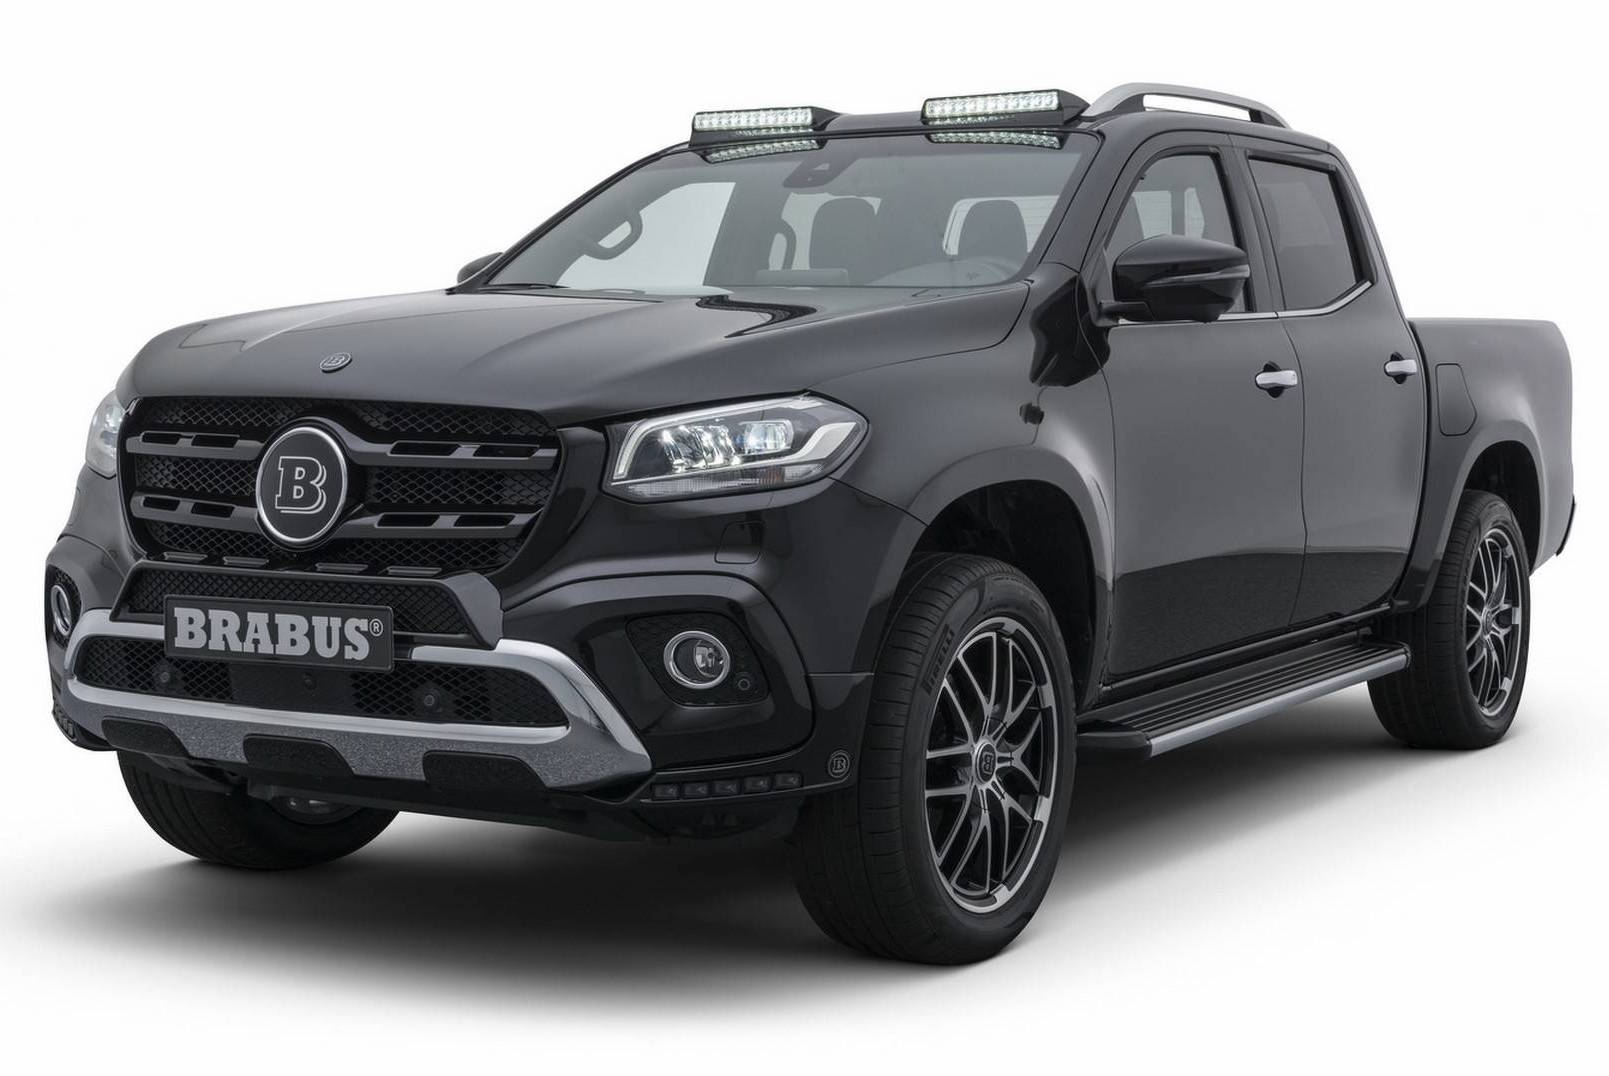 brabus reveals first upgrades for mercedes benz x class performancedrive. Black Bedroom Furniture Sets. Home Design Ideas